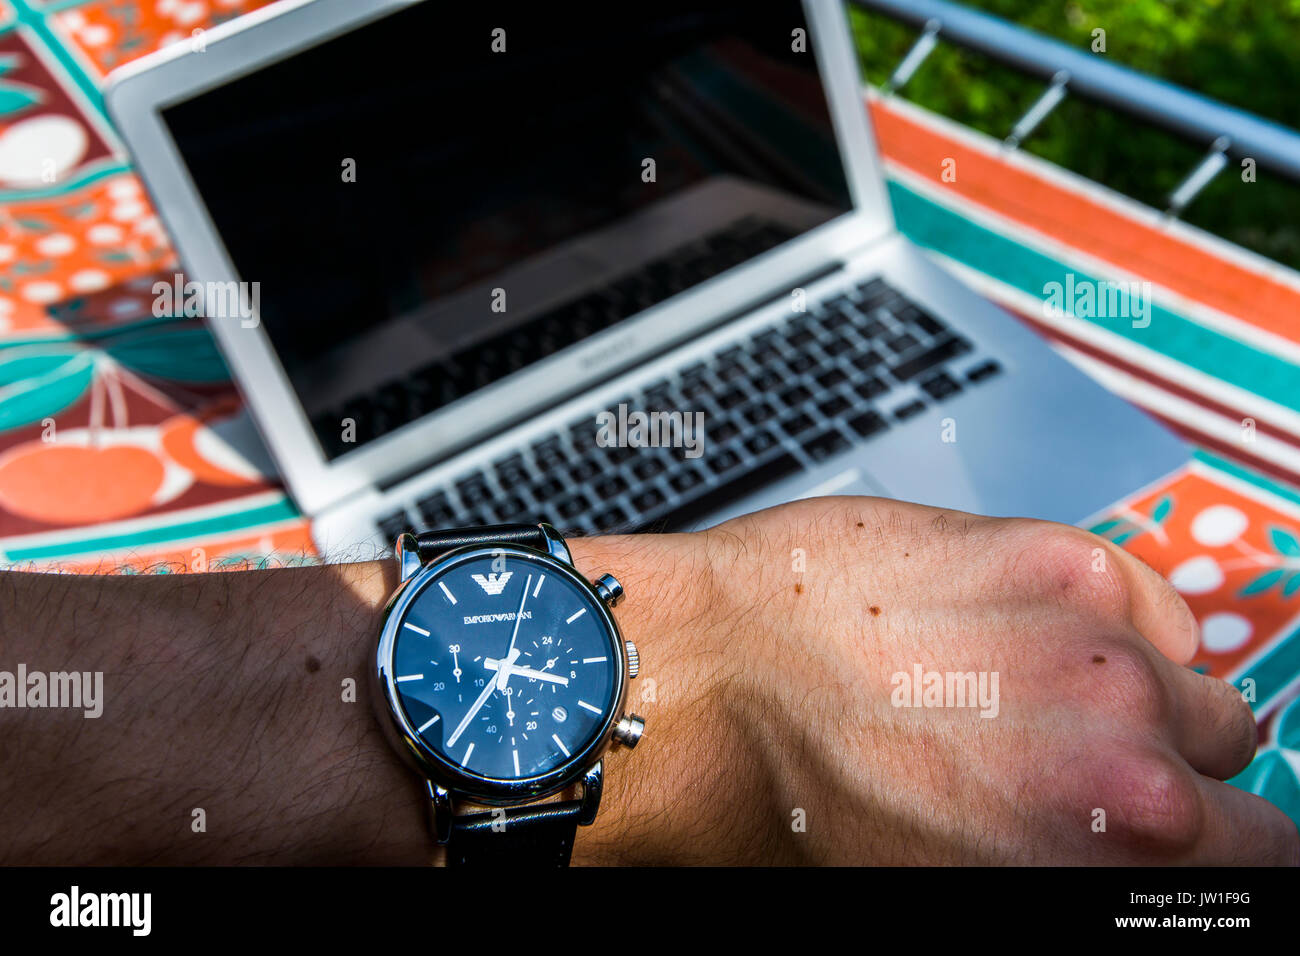 View from person's eyes. Checking hour on a Giorgio Armani watch with a notebook laying on a sunbed in the background. Stock Photo